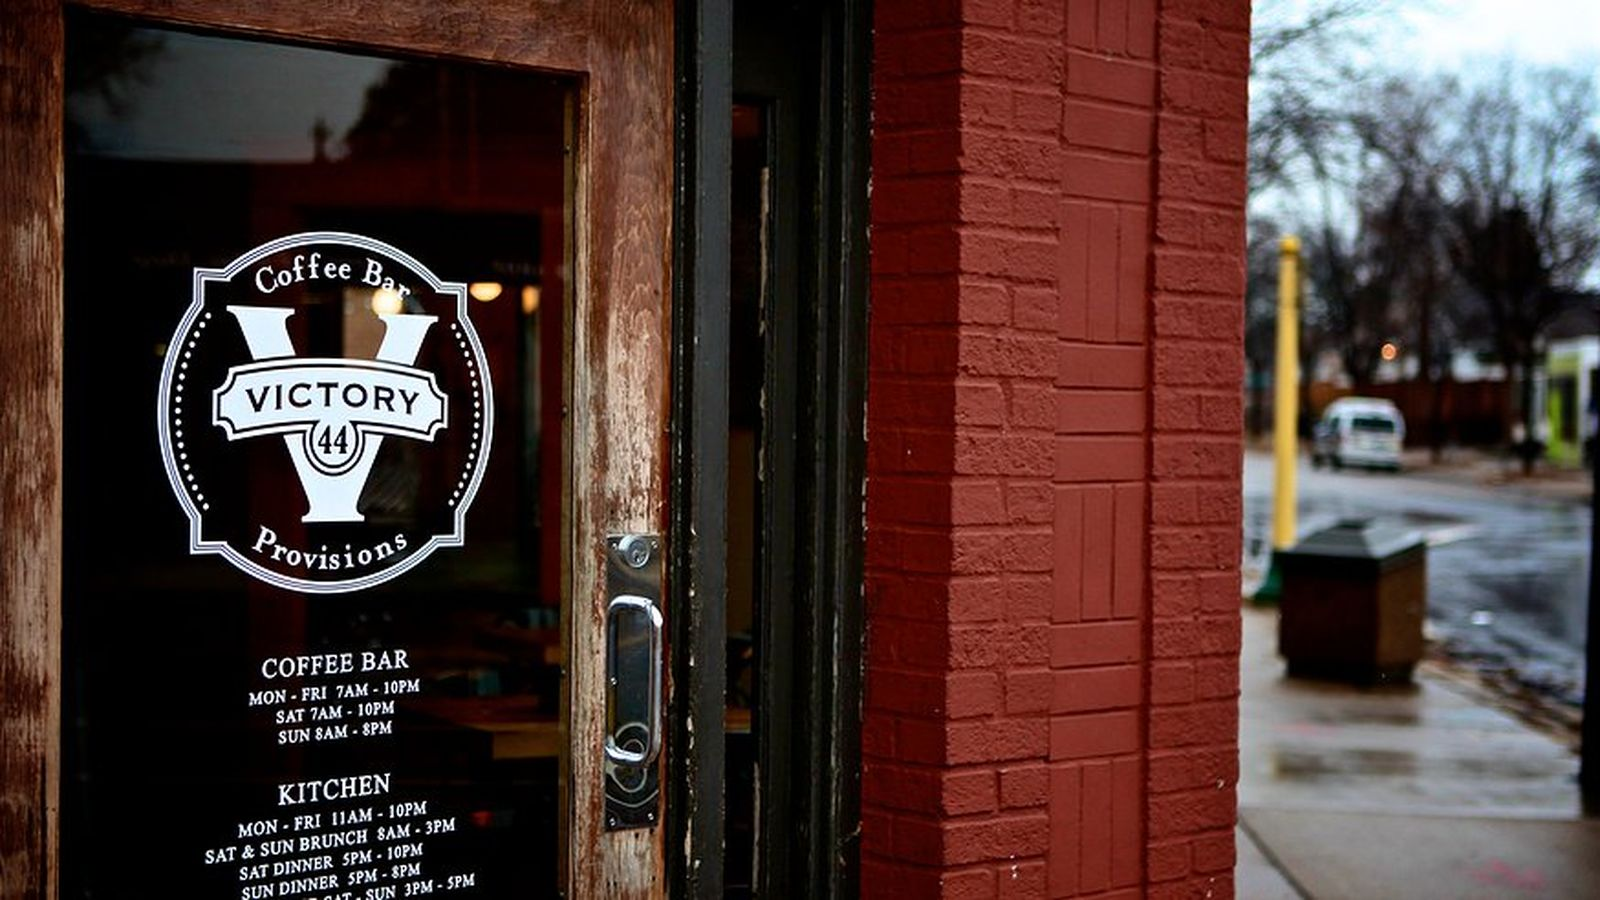 Victory 44 had raised its prices to pay front and back of house employees equally.